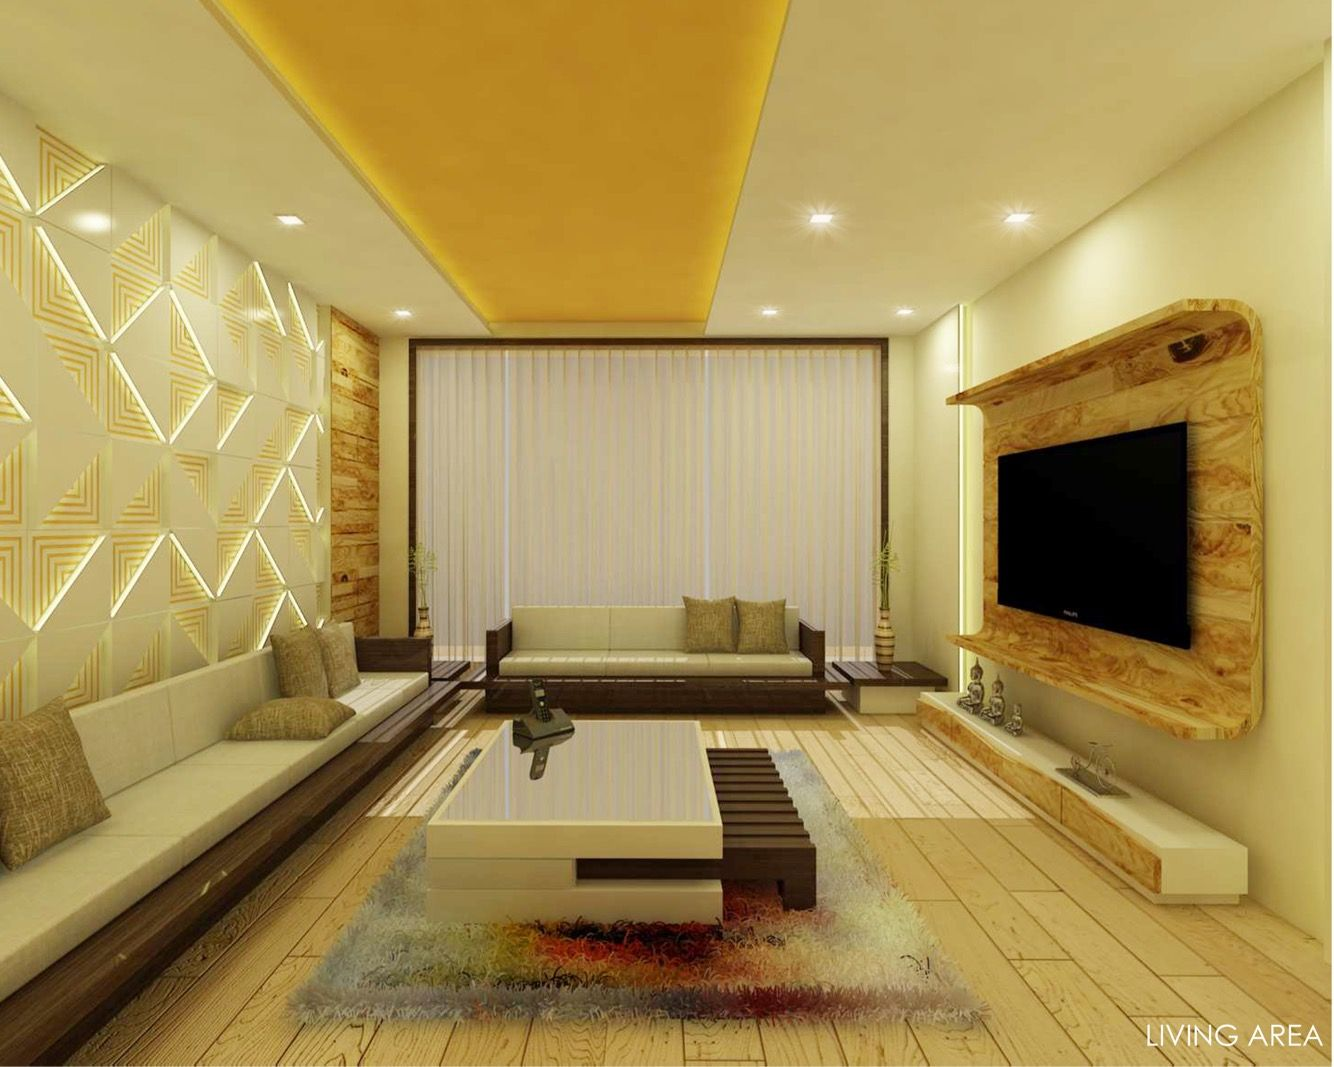 Living Room Interior Room Wall Paneling